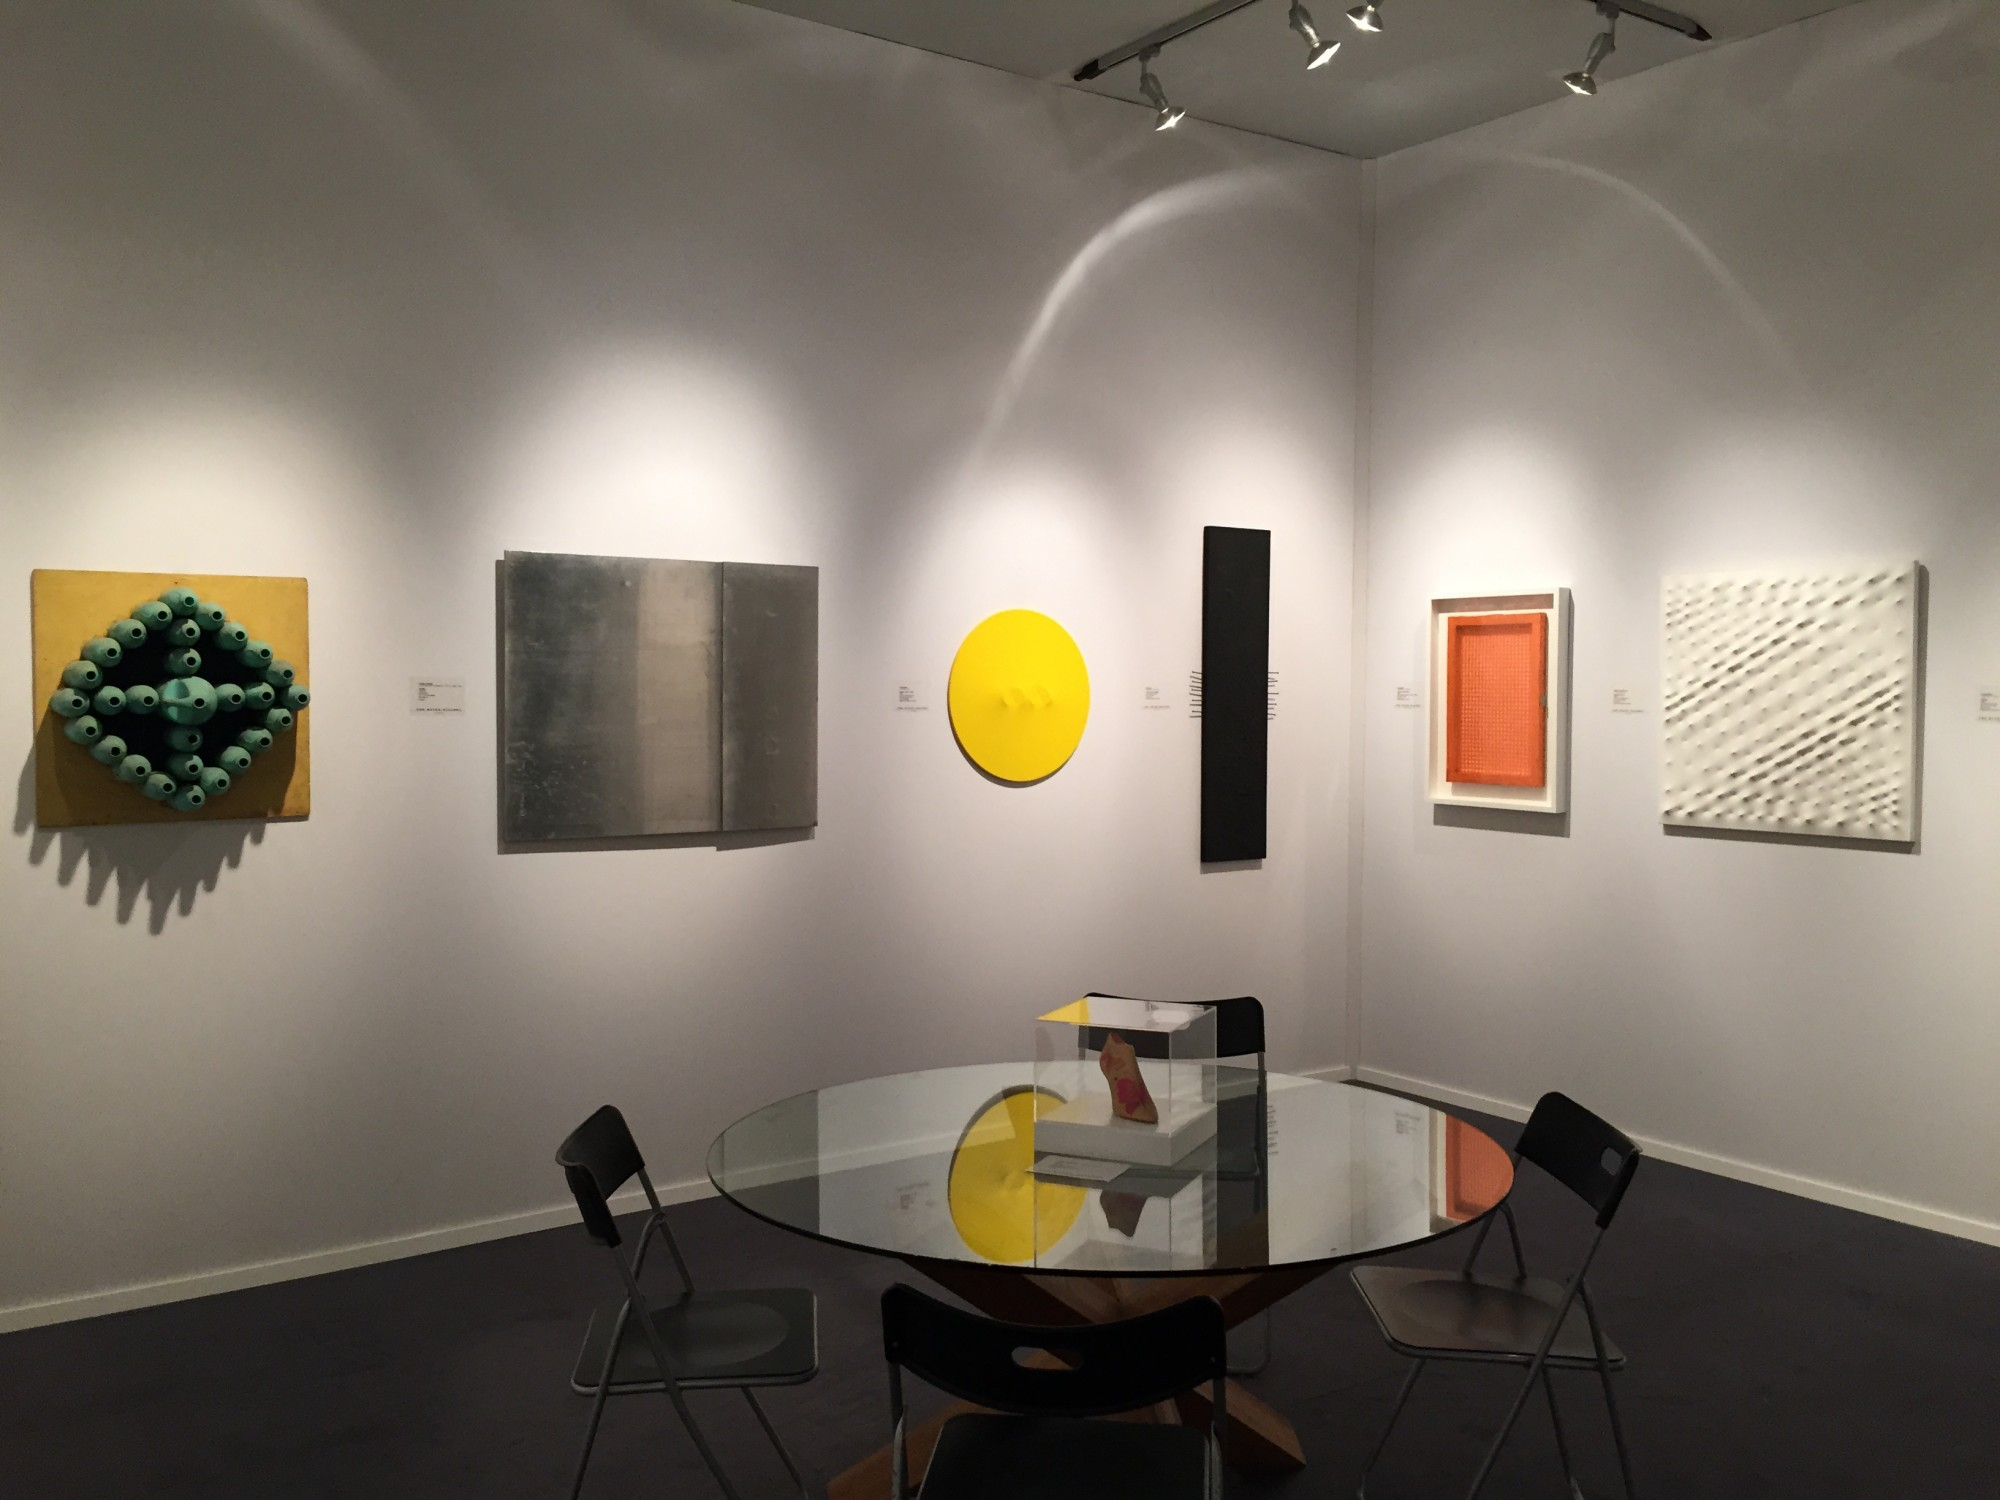 """<span class=""""link fancybox-details-link""""><a href=""""/exhibitions/315/works/image_standalone1561/"""">View Detail Page</a></span><p>TEFAF 2015, INSTALLATION VIEW</p>"""